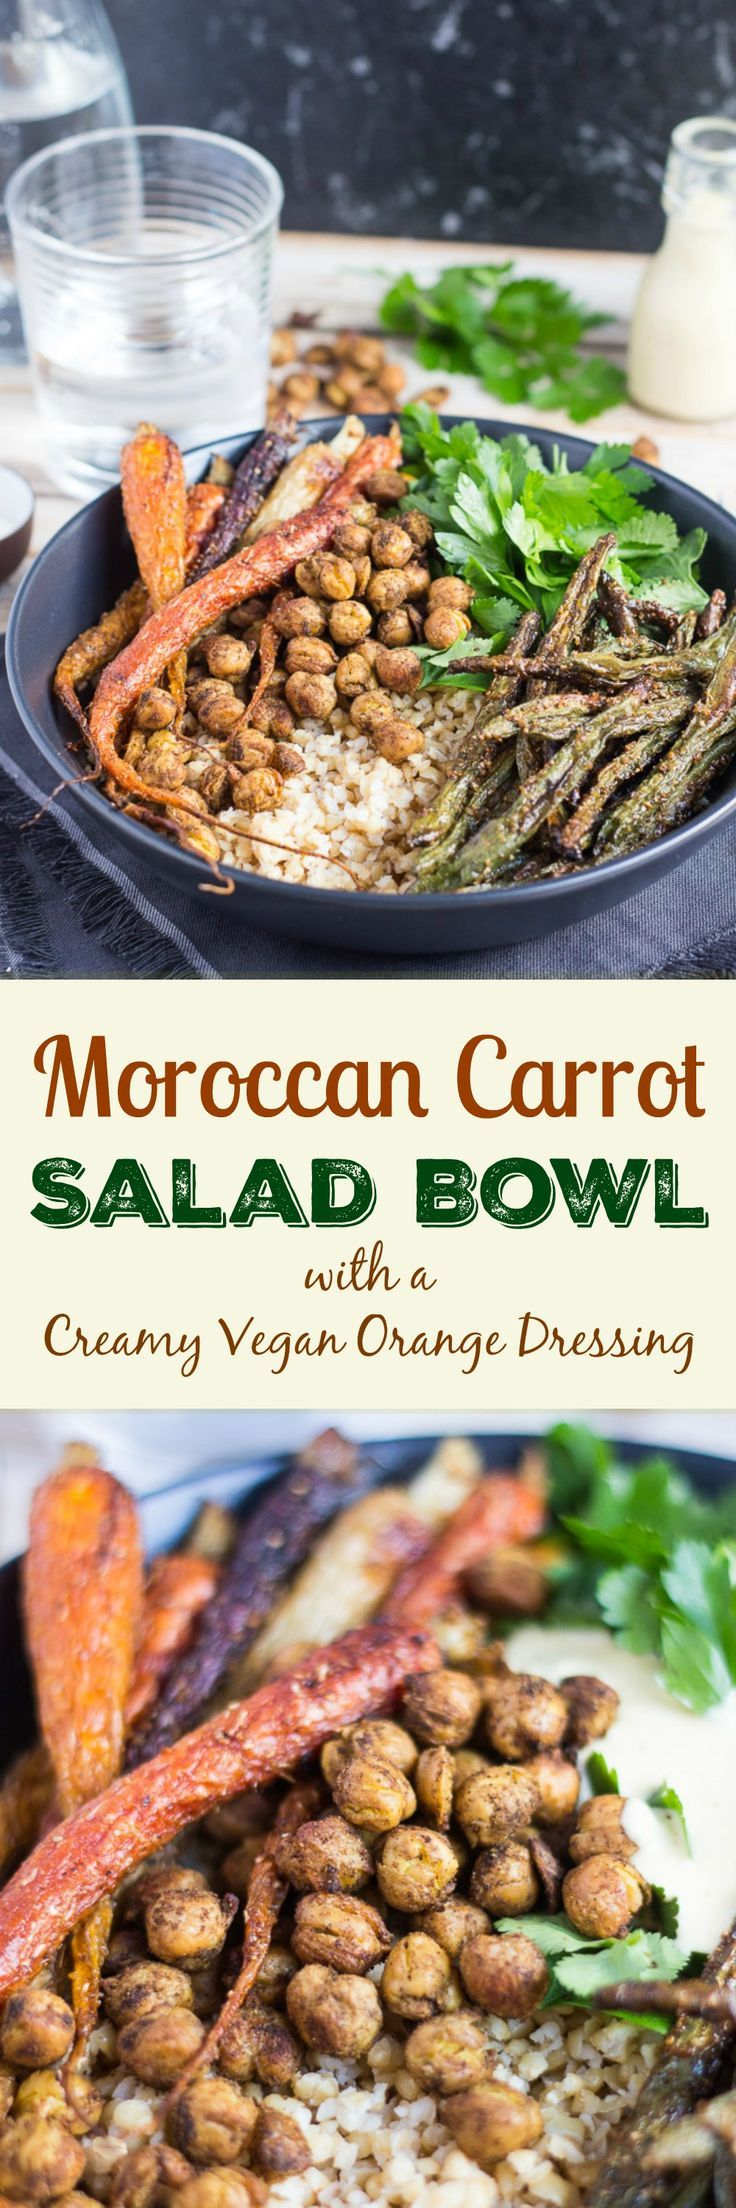 Moroccan Carrot Salad Bowl. Spiked with a creamy vegan orange dressing & crunchy spiced chickpeas for maximum flavour.